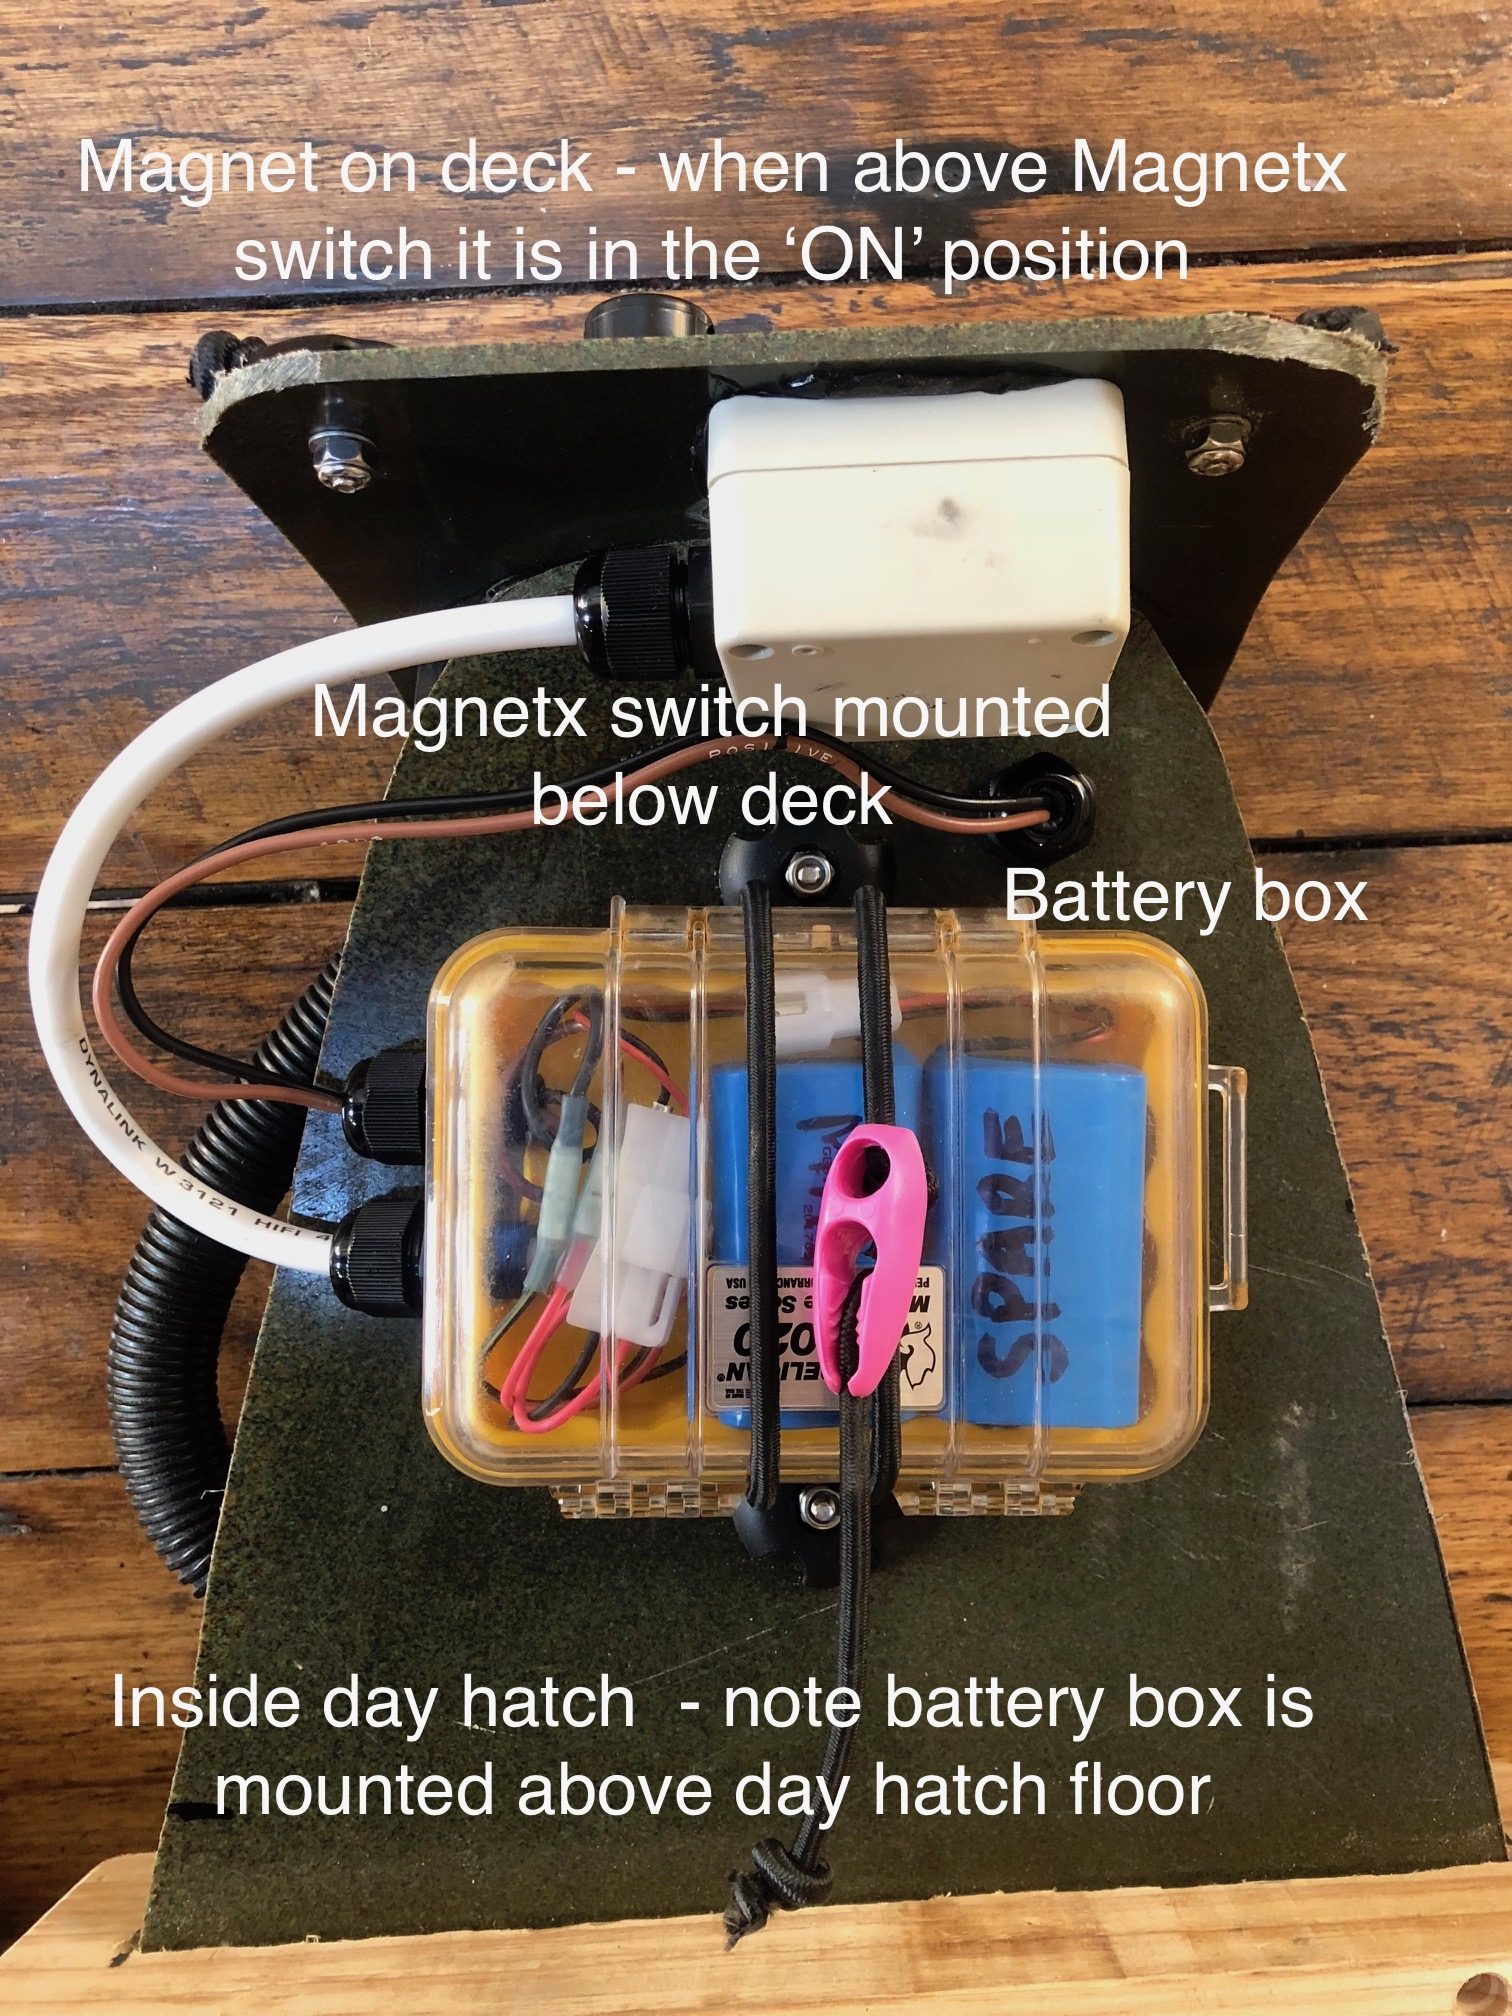 Magnetx switch, battery box containing 2x Lithium batteries - view from inside 'day hatch'.